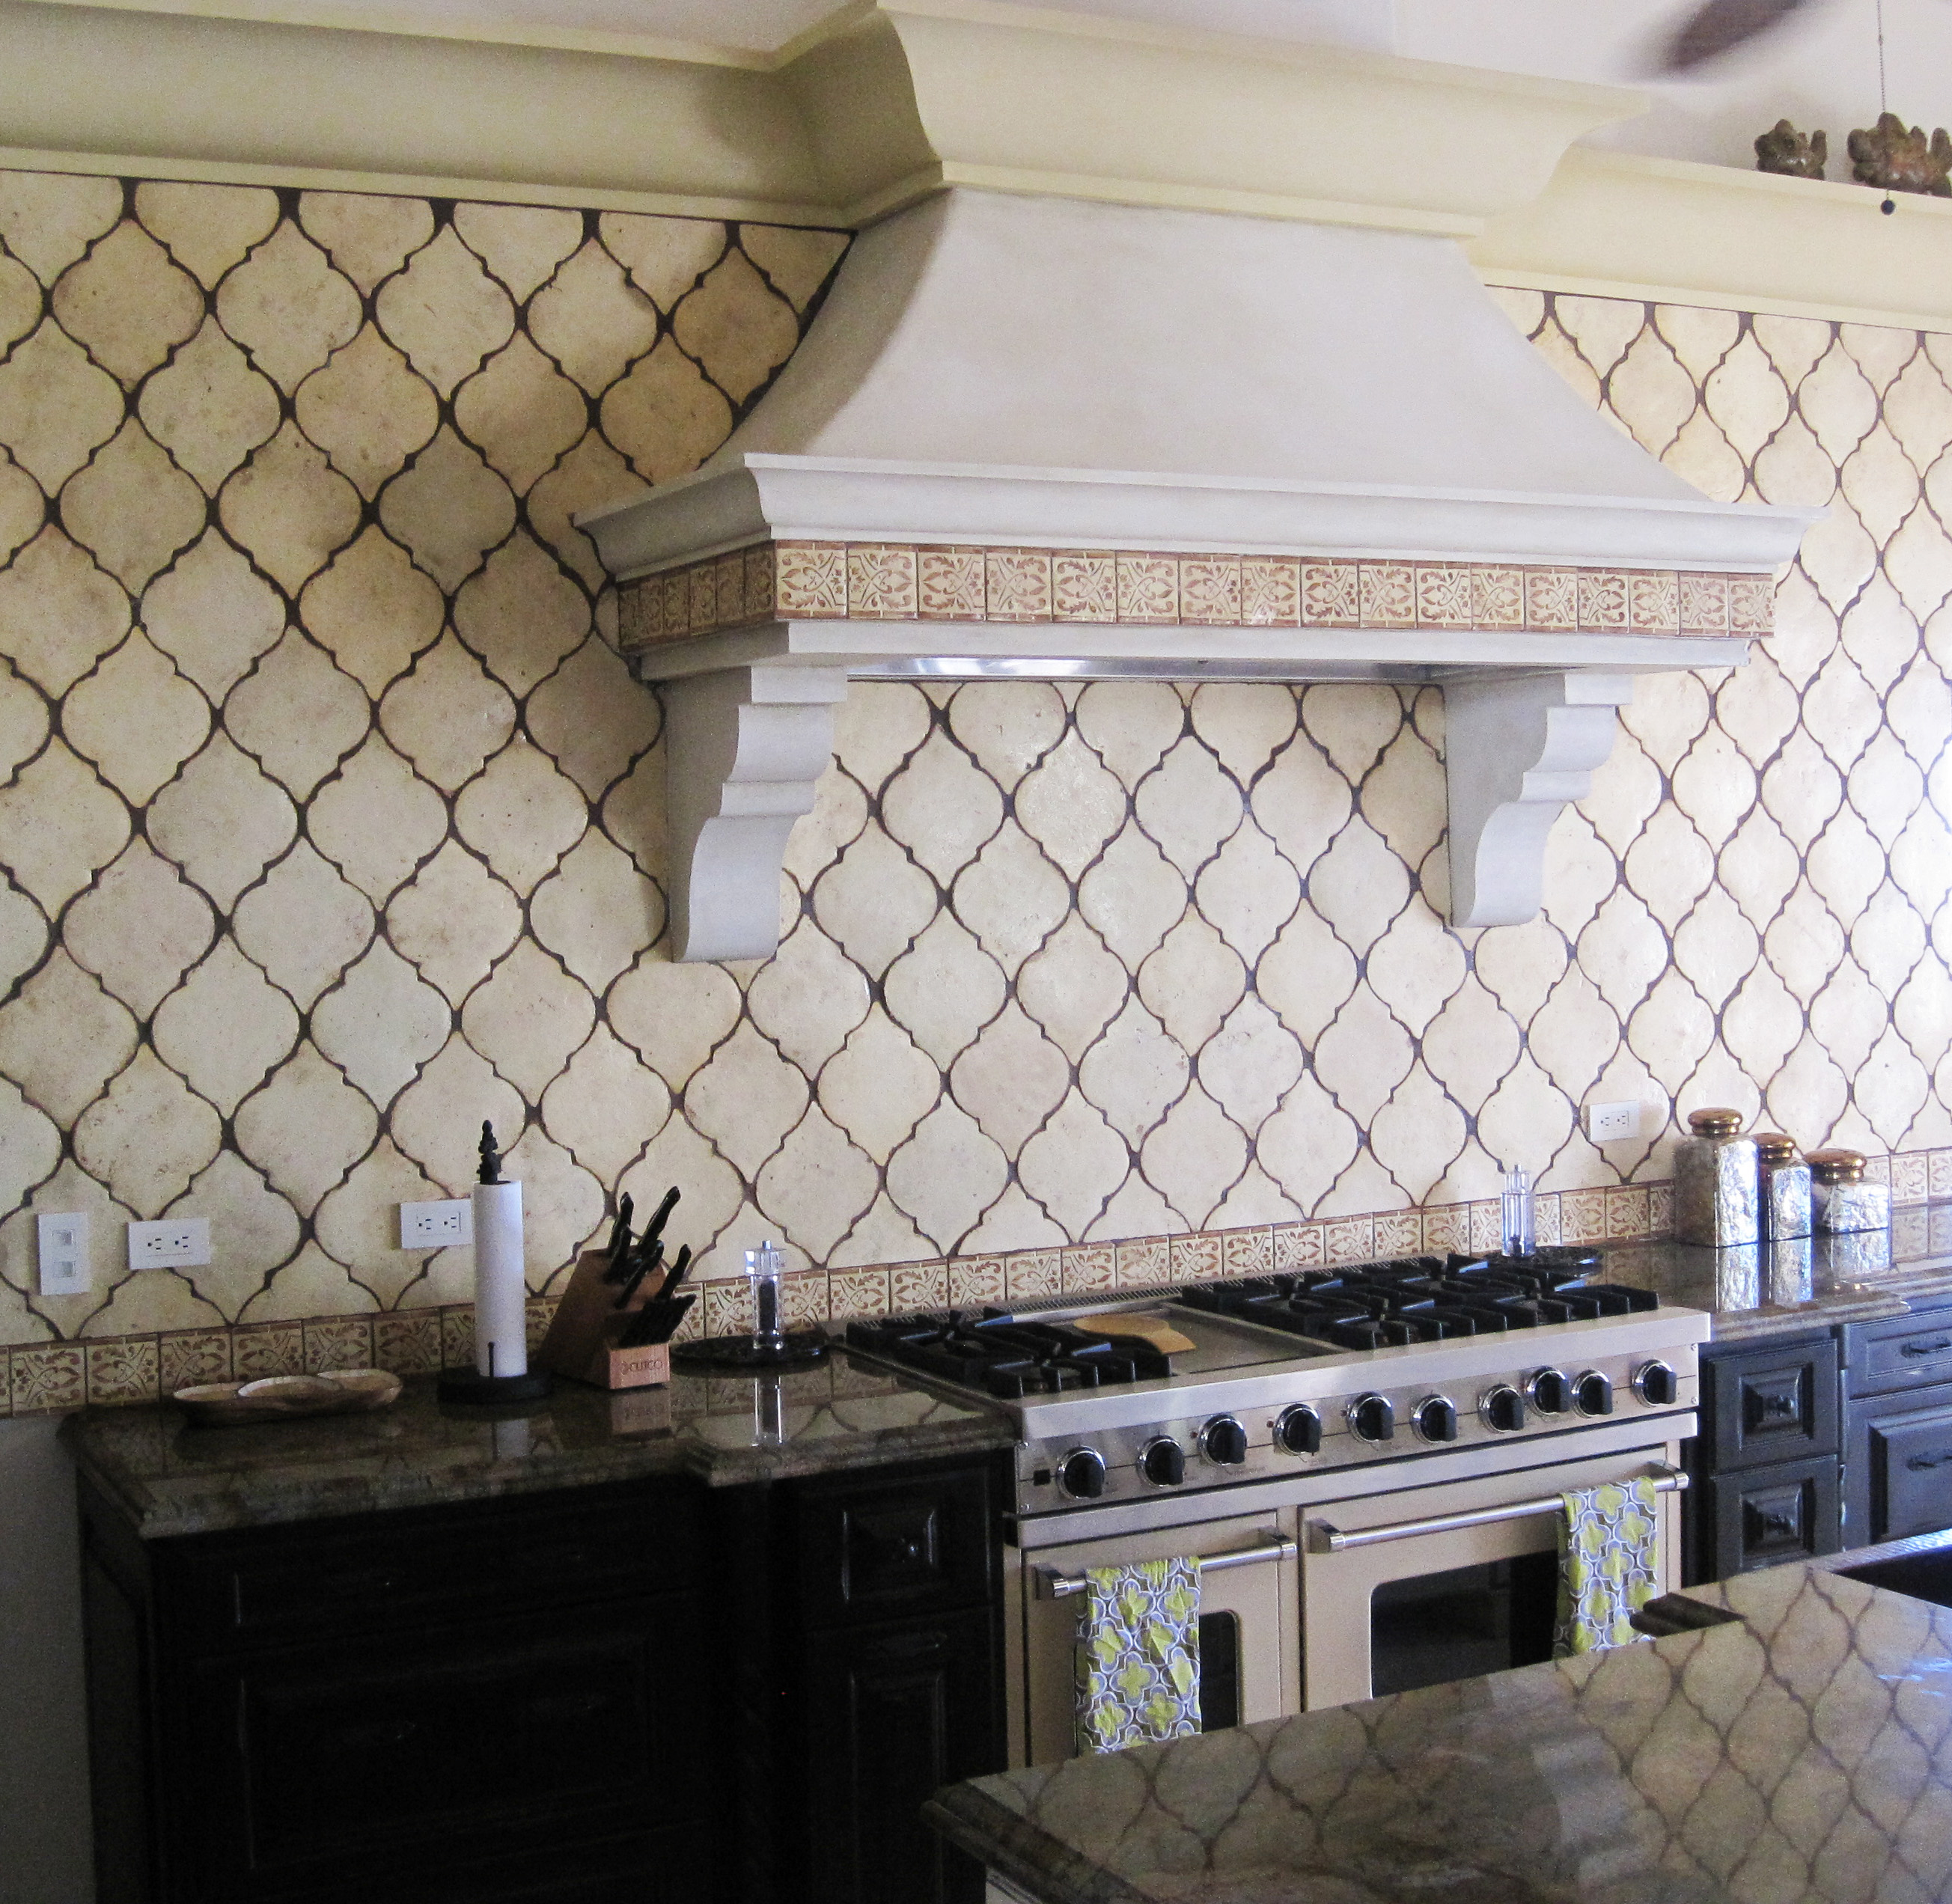 Kitchen Studio Of Naples, Inc